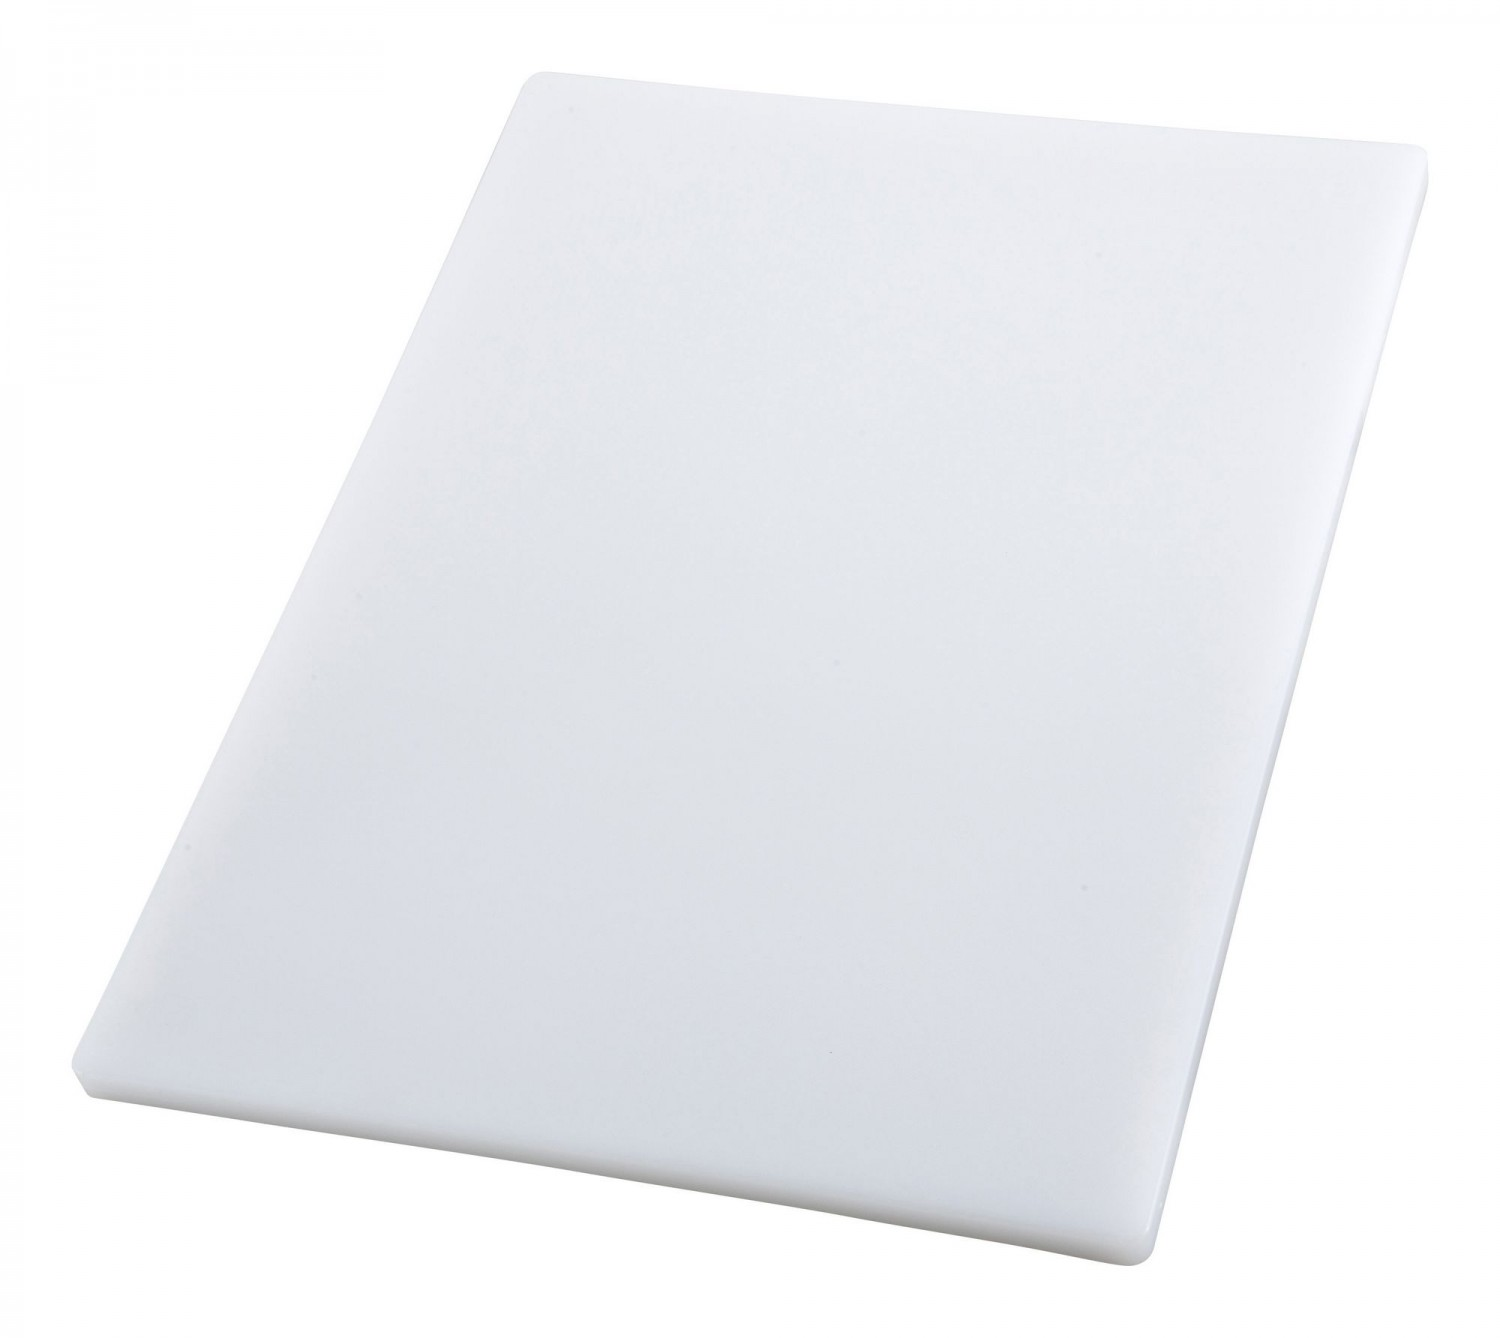 "Winco CBH-1520 White Plastic Cutting Board 15"" x 20"" x 3/4"""